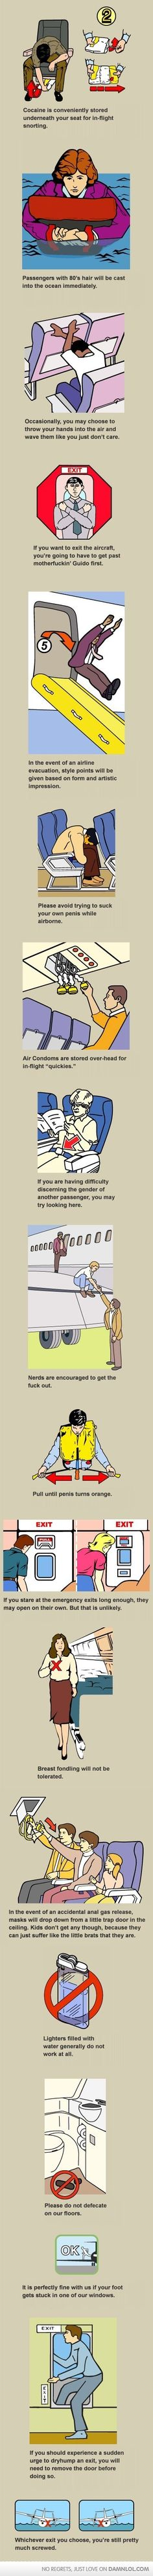 Airplane Safety Guidelines